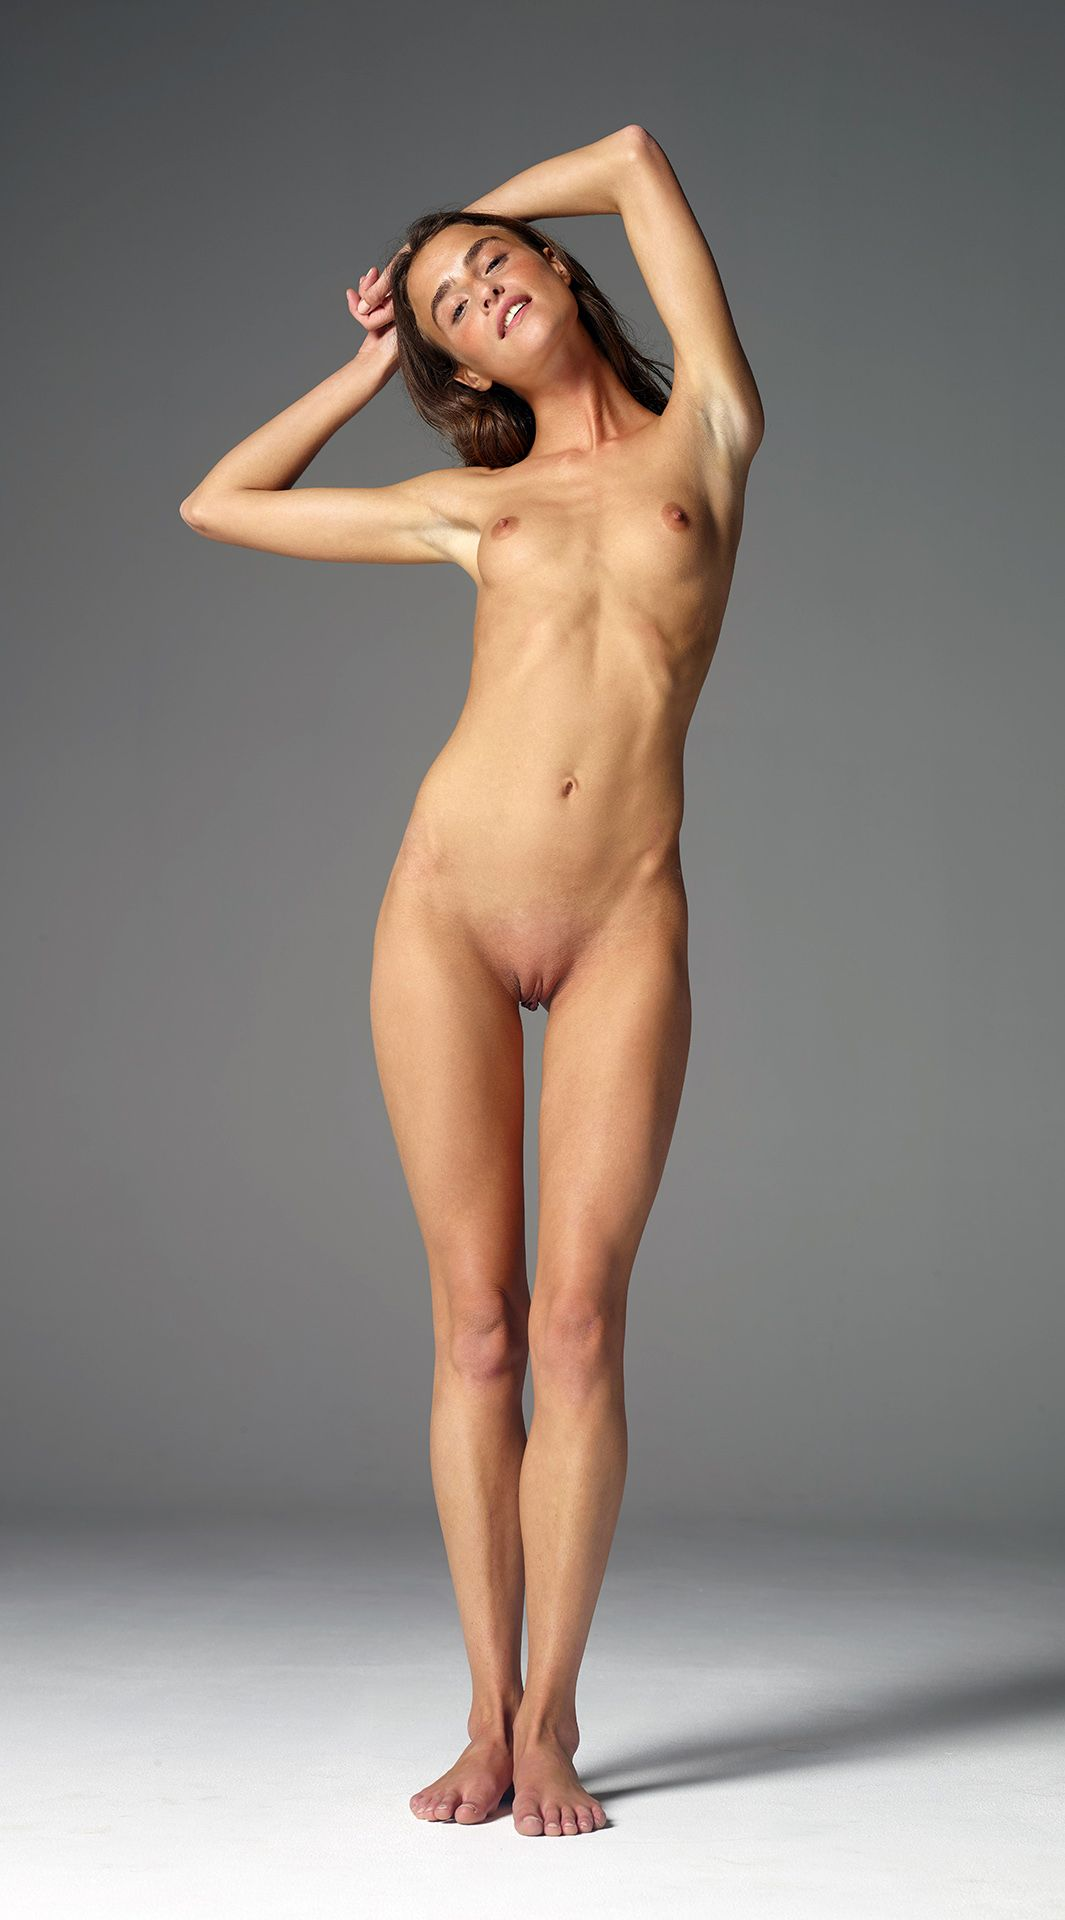 nude-woman-standing-pose-nsfw-best-pink-little-pussy